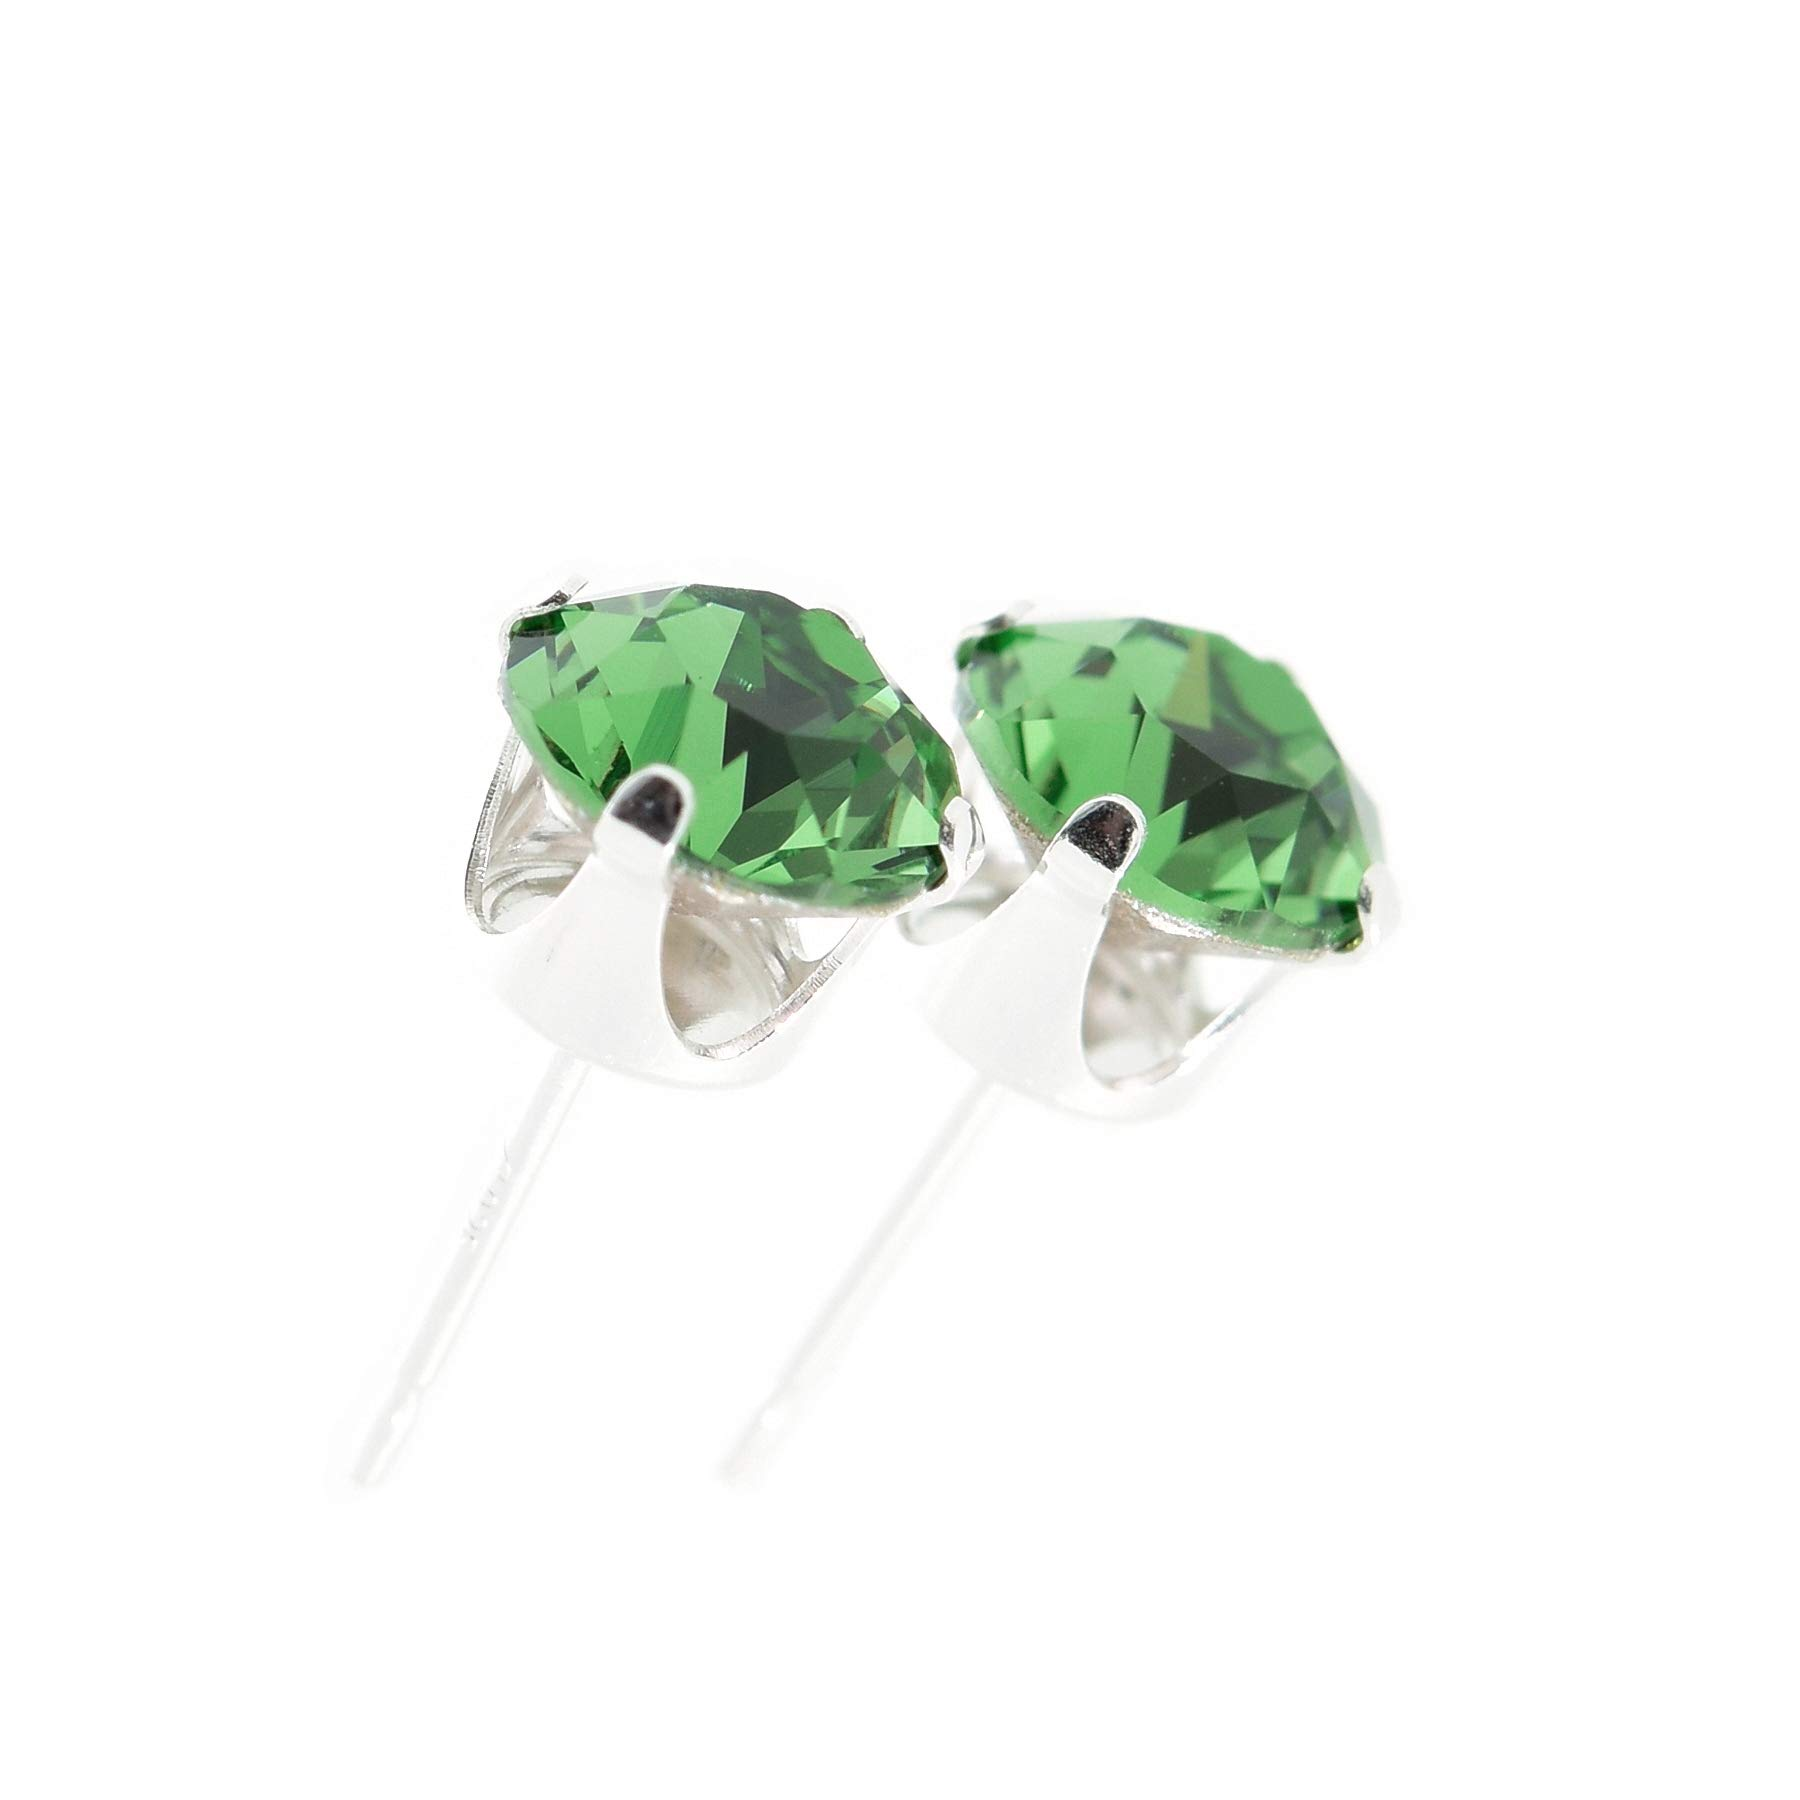 Classic Collection Sterling Silver Crystal Stud Earrings. Made with sparkling Erinite Green crystal stones. Gift box.